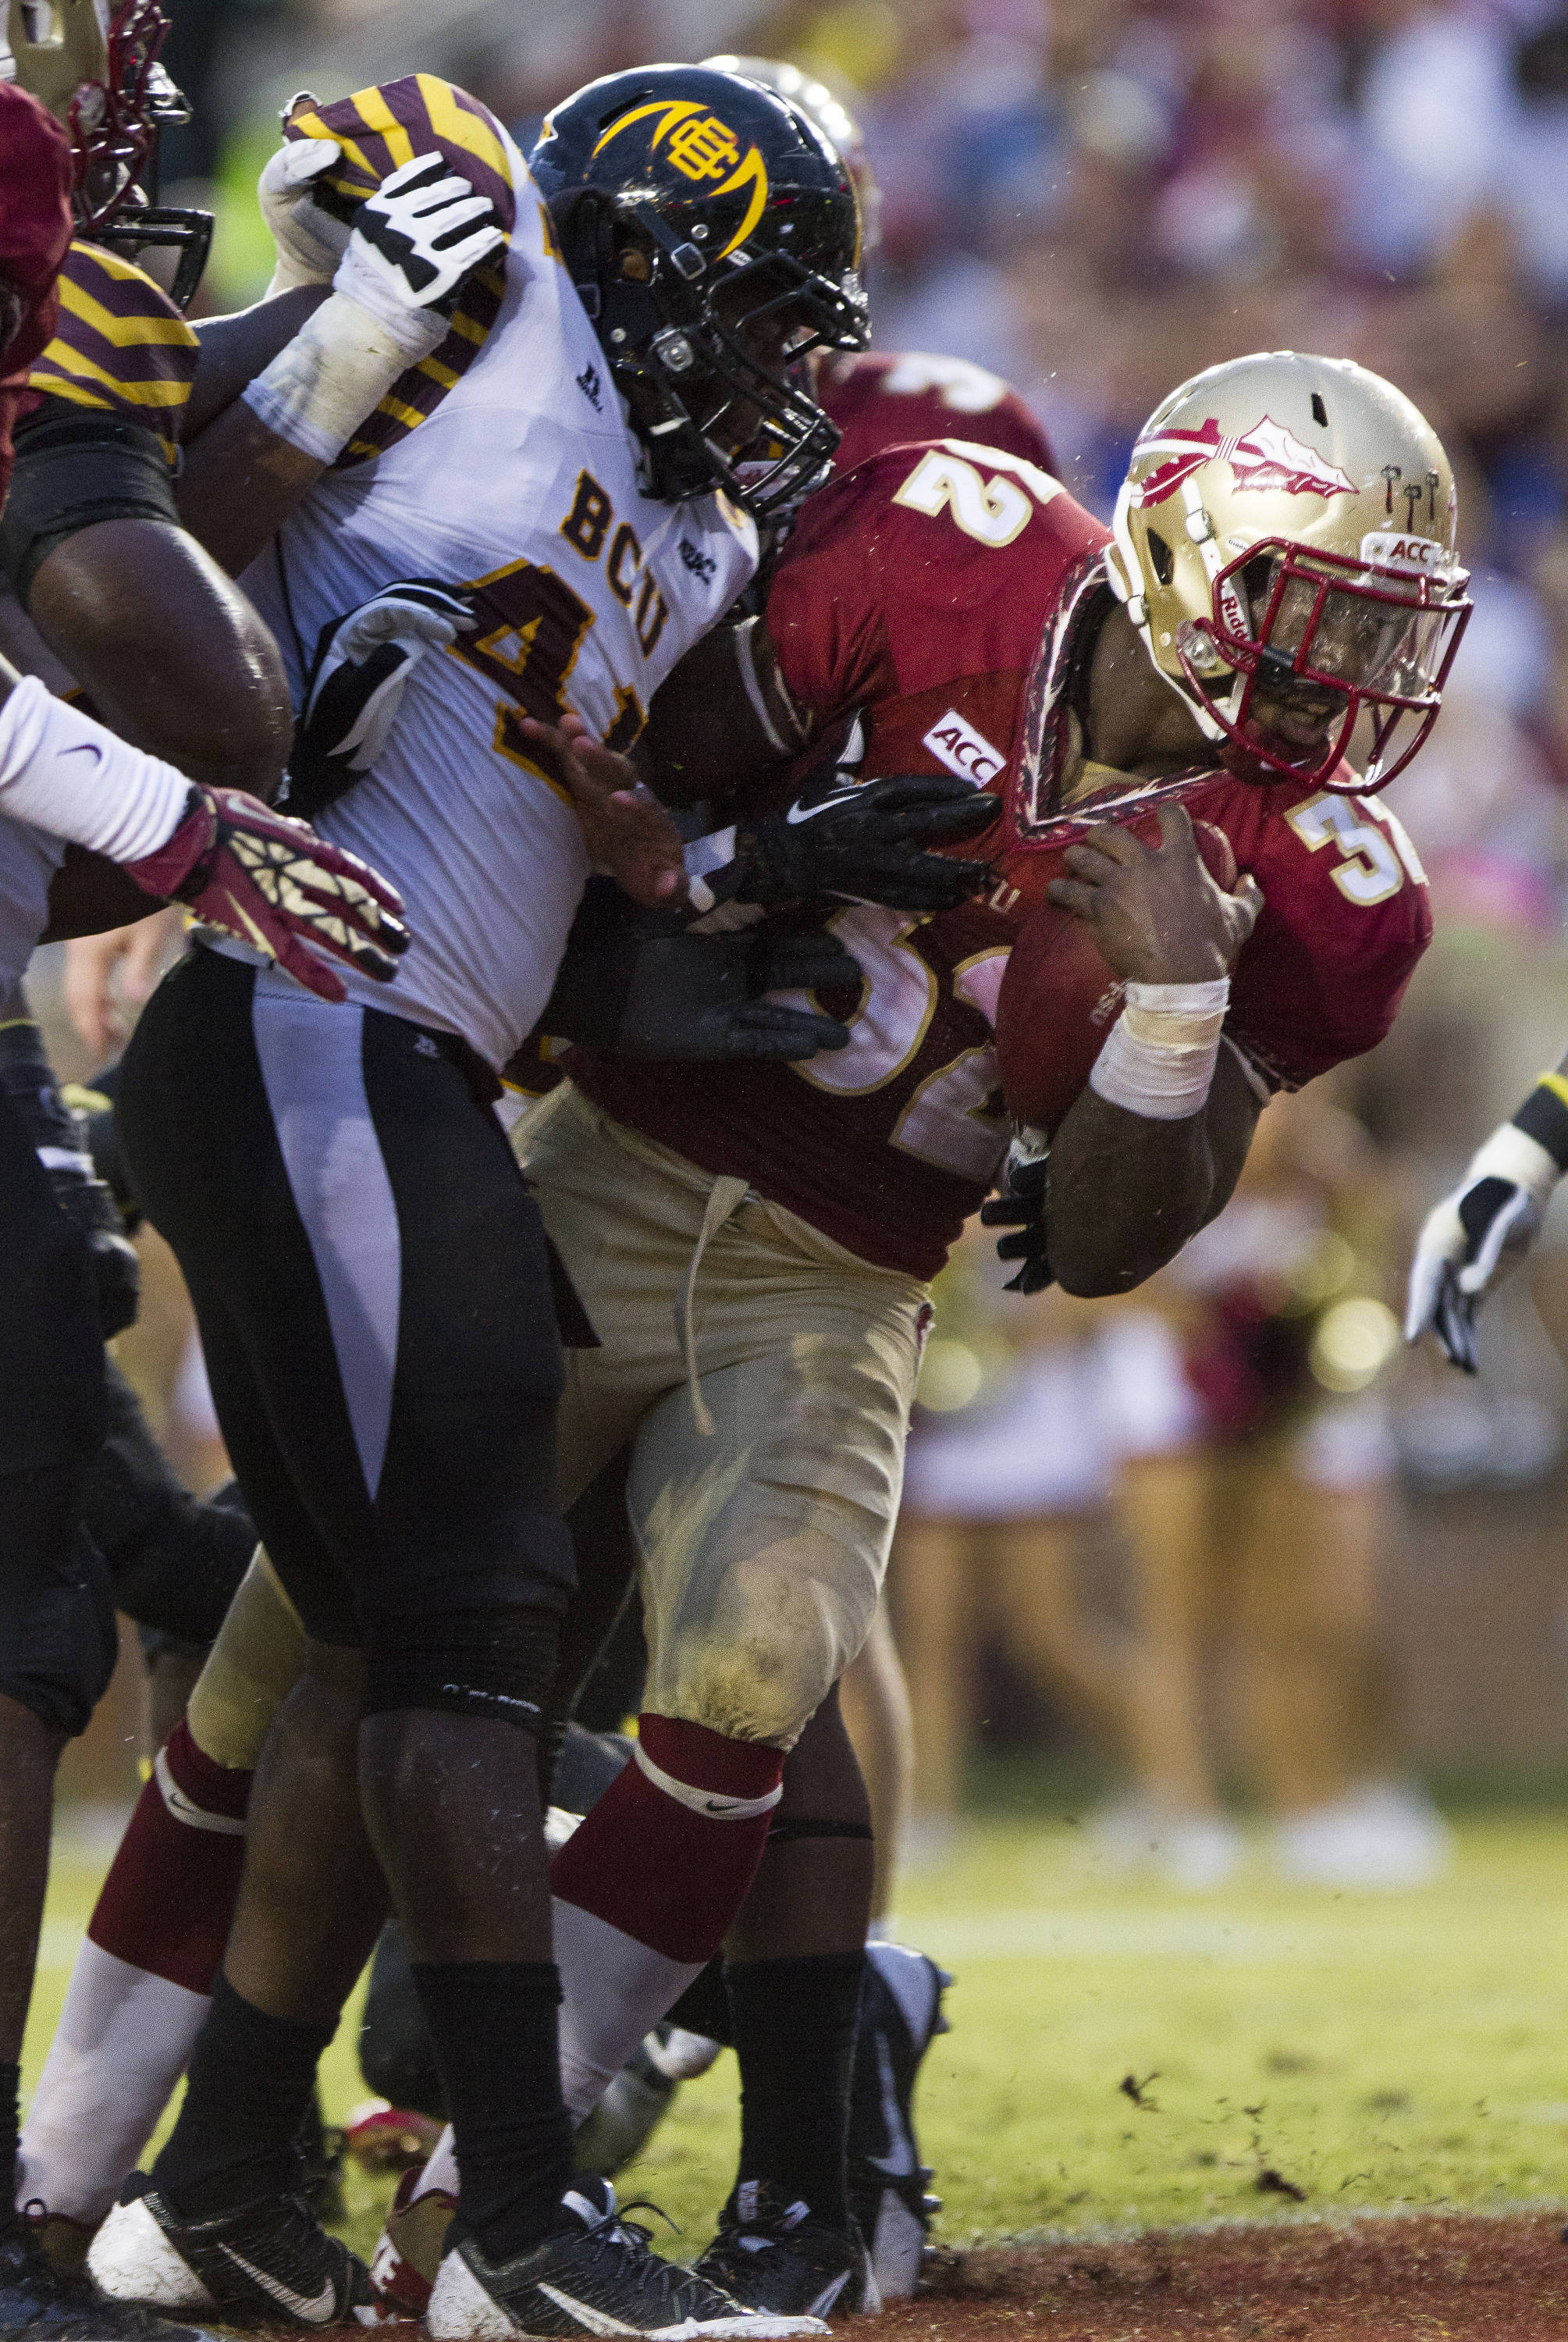 James Wilder, Jr. (32) lunges in to the end zone during FSU Football's 54-6 win over Bethune-Cookman on September 21, 2013 in Tallahassee, Fla